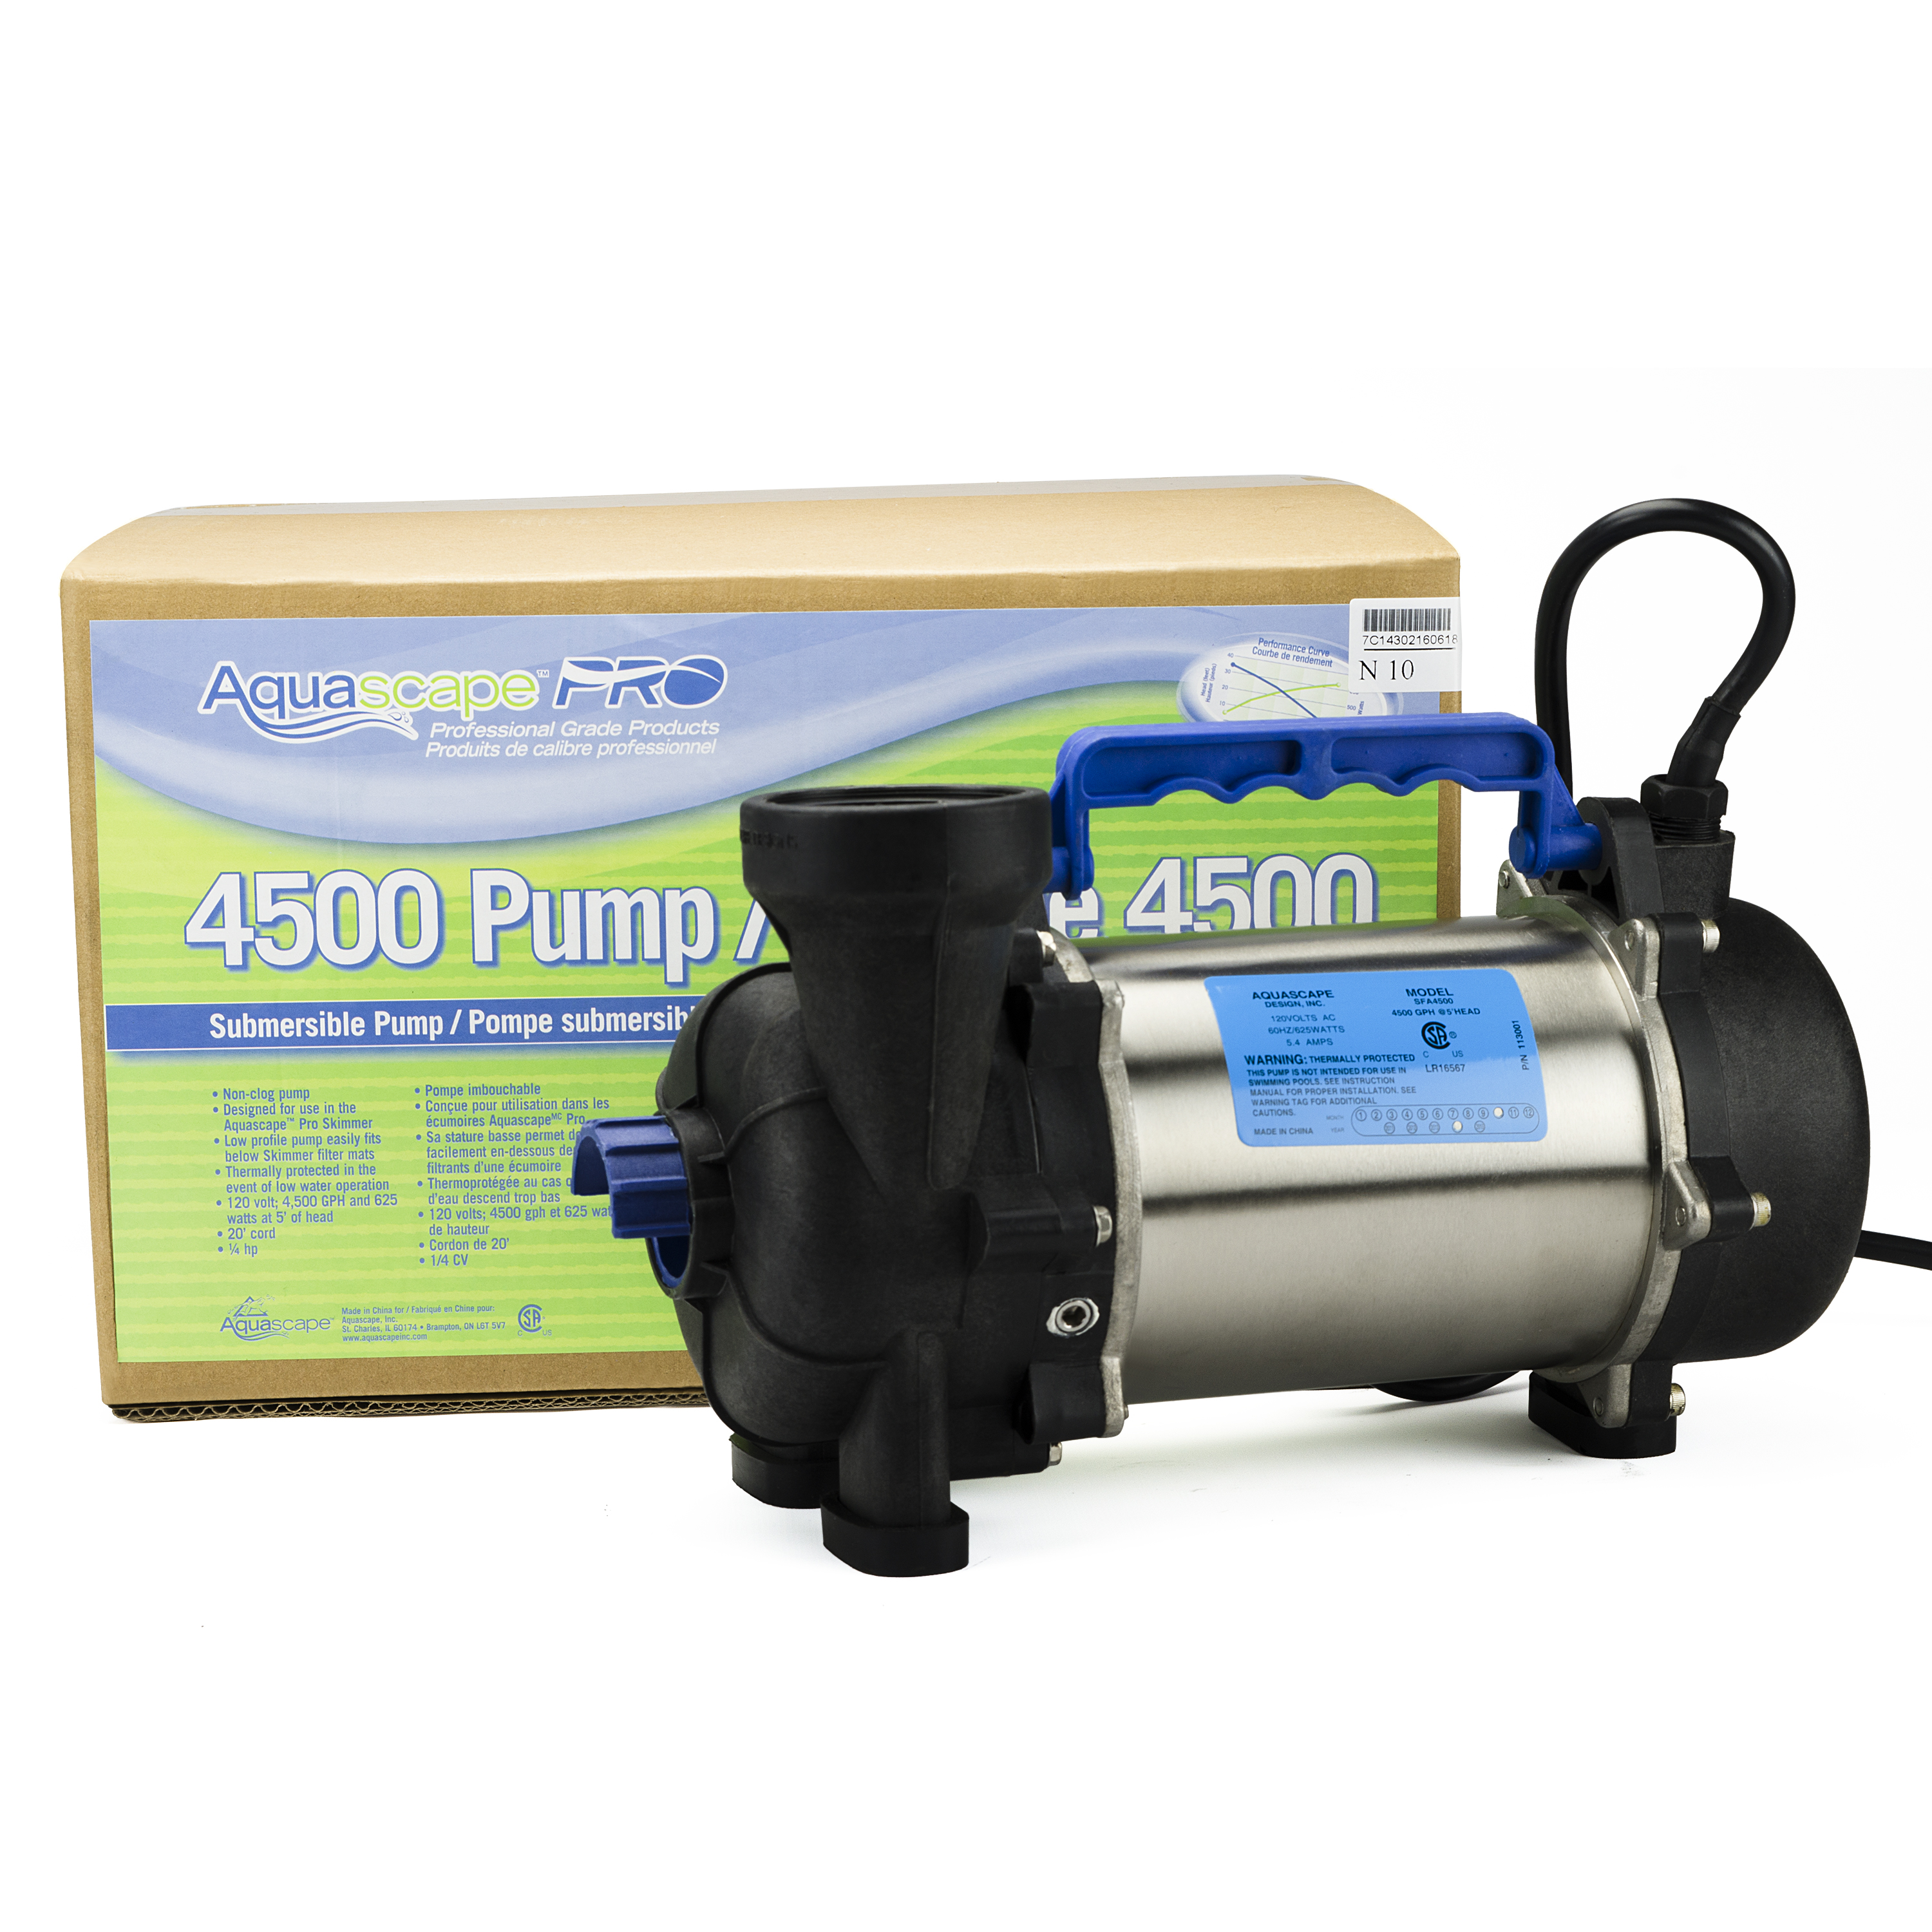 AquascapePRO 4500 Pond Pump